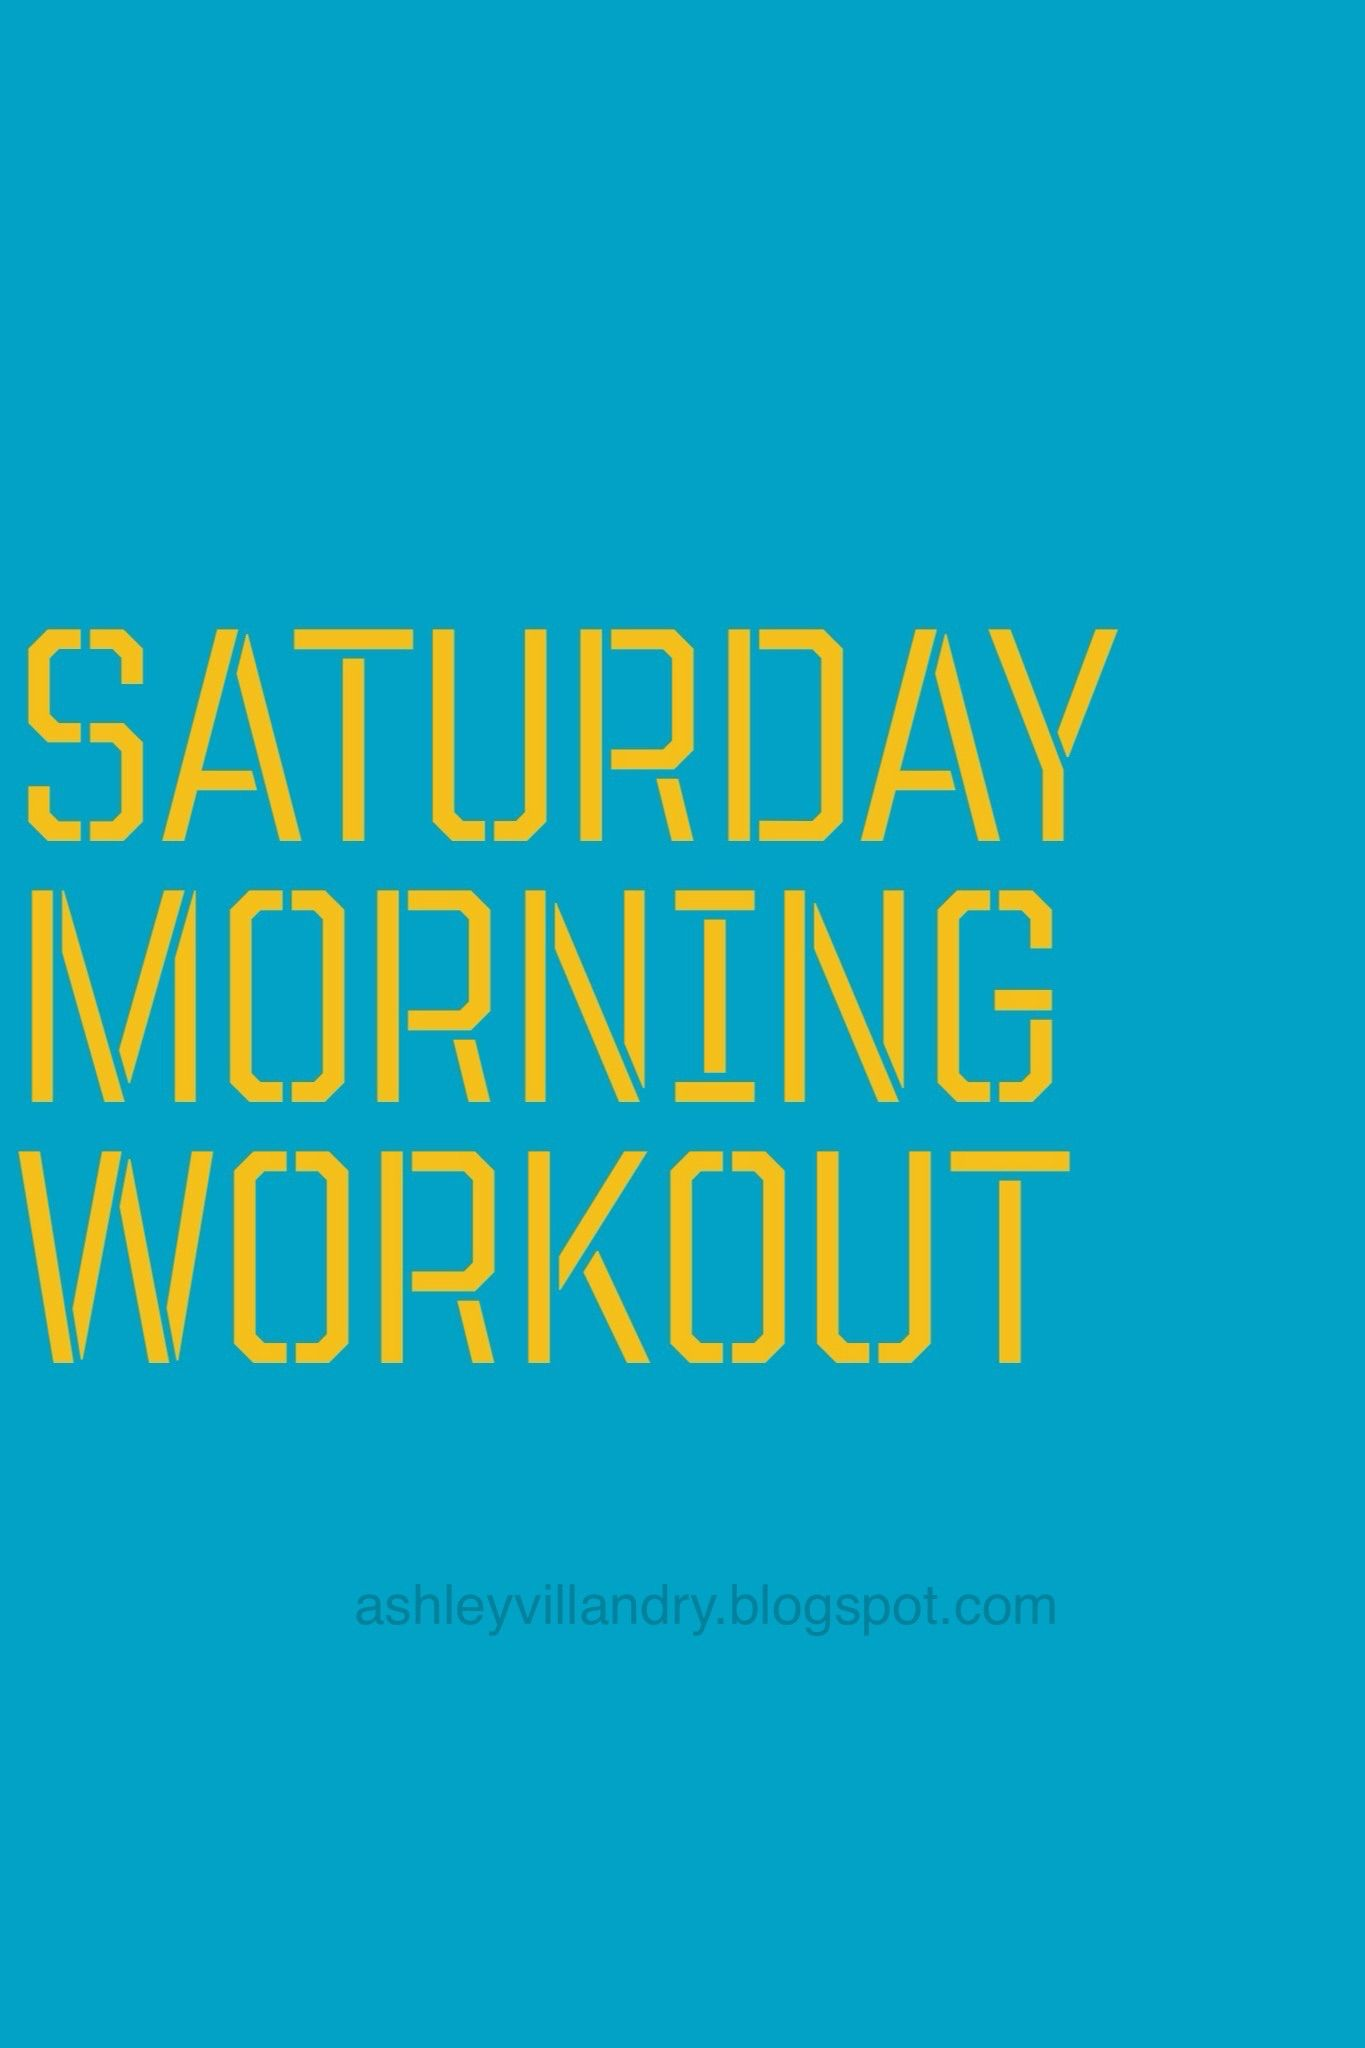 5 Saturday Gym Motivation Quotes Reference Ad Trainers at 6000 Gyms Choose the Myzone HIIT Heart Rate System - Find Out Why Today.